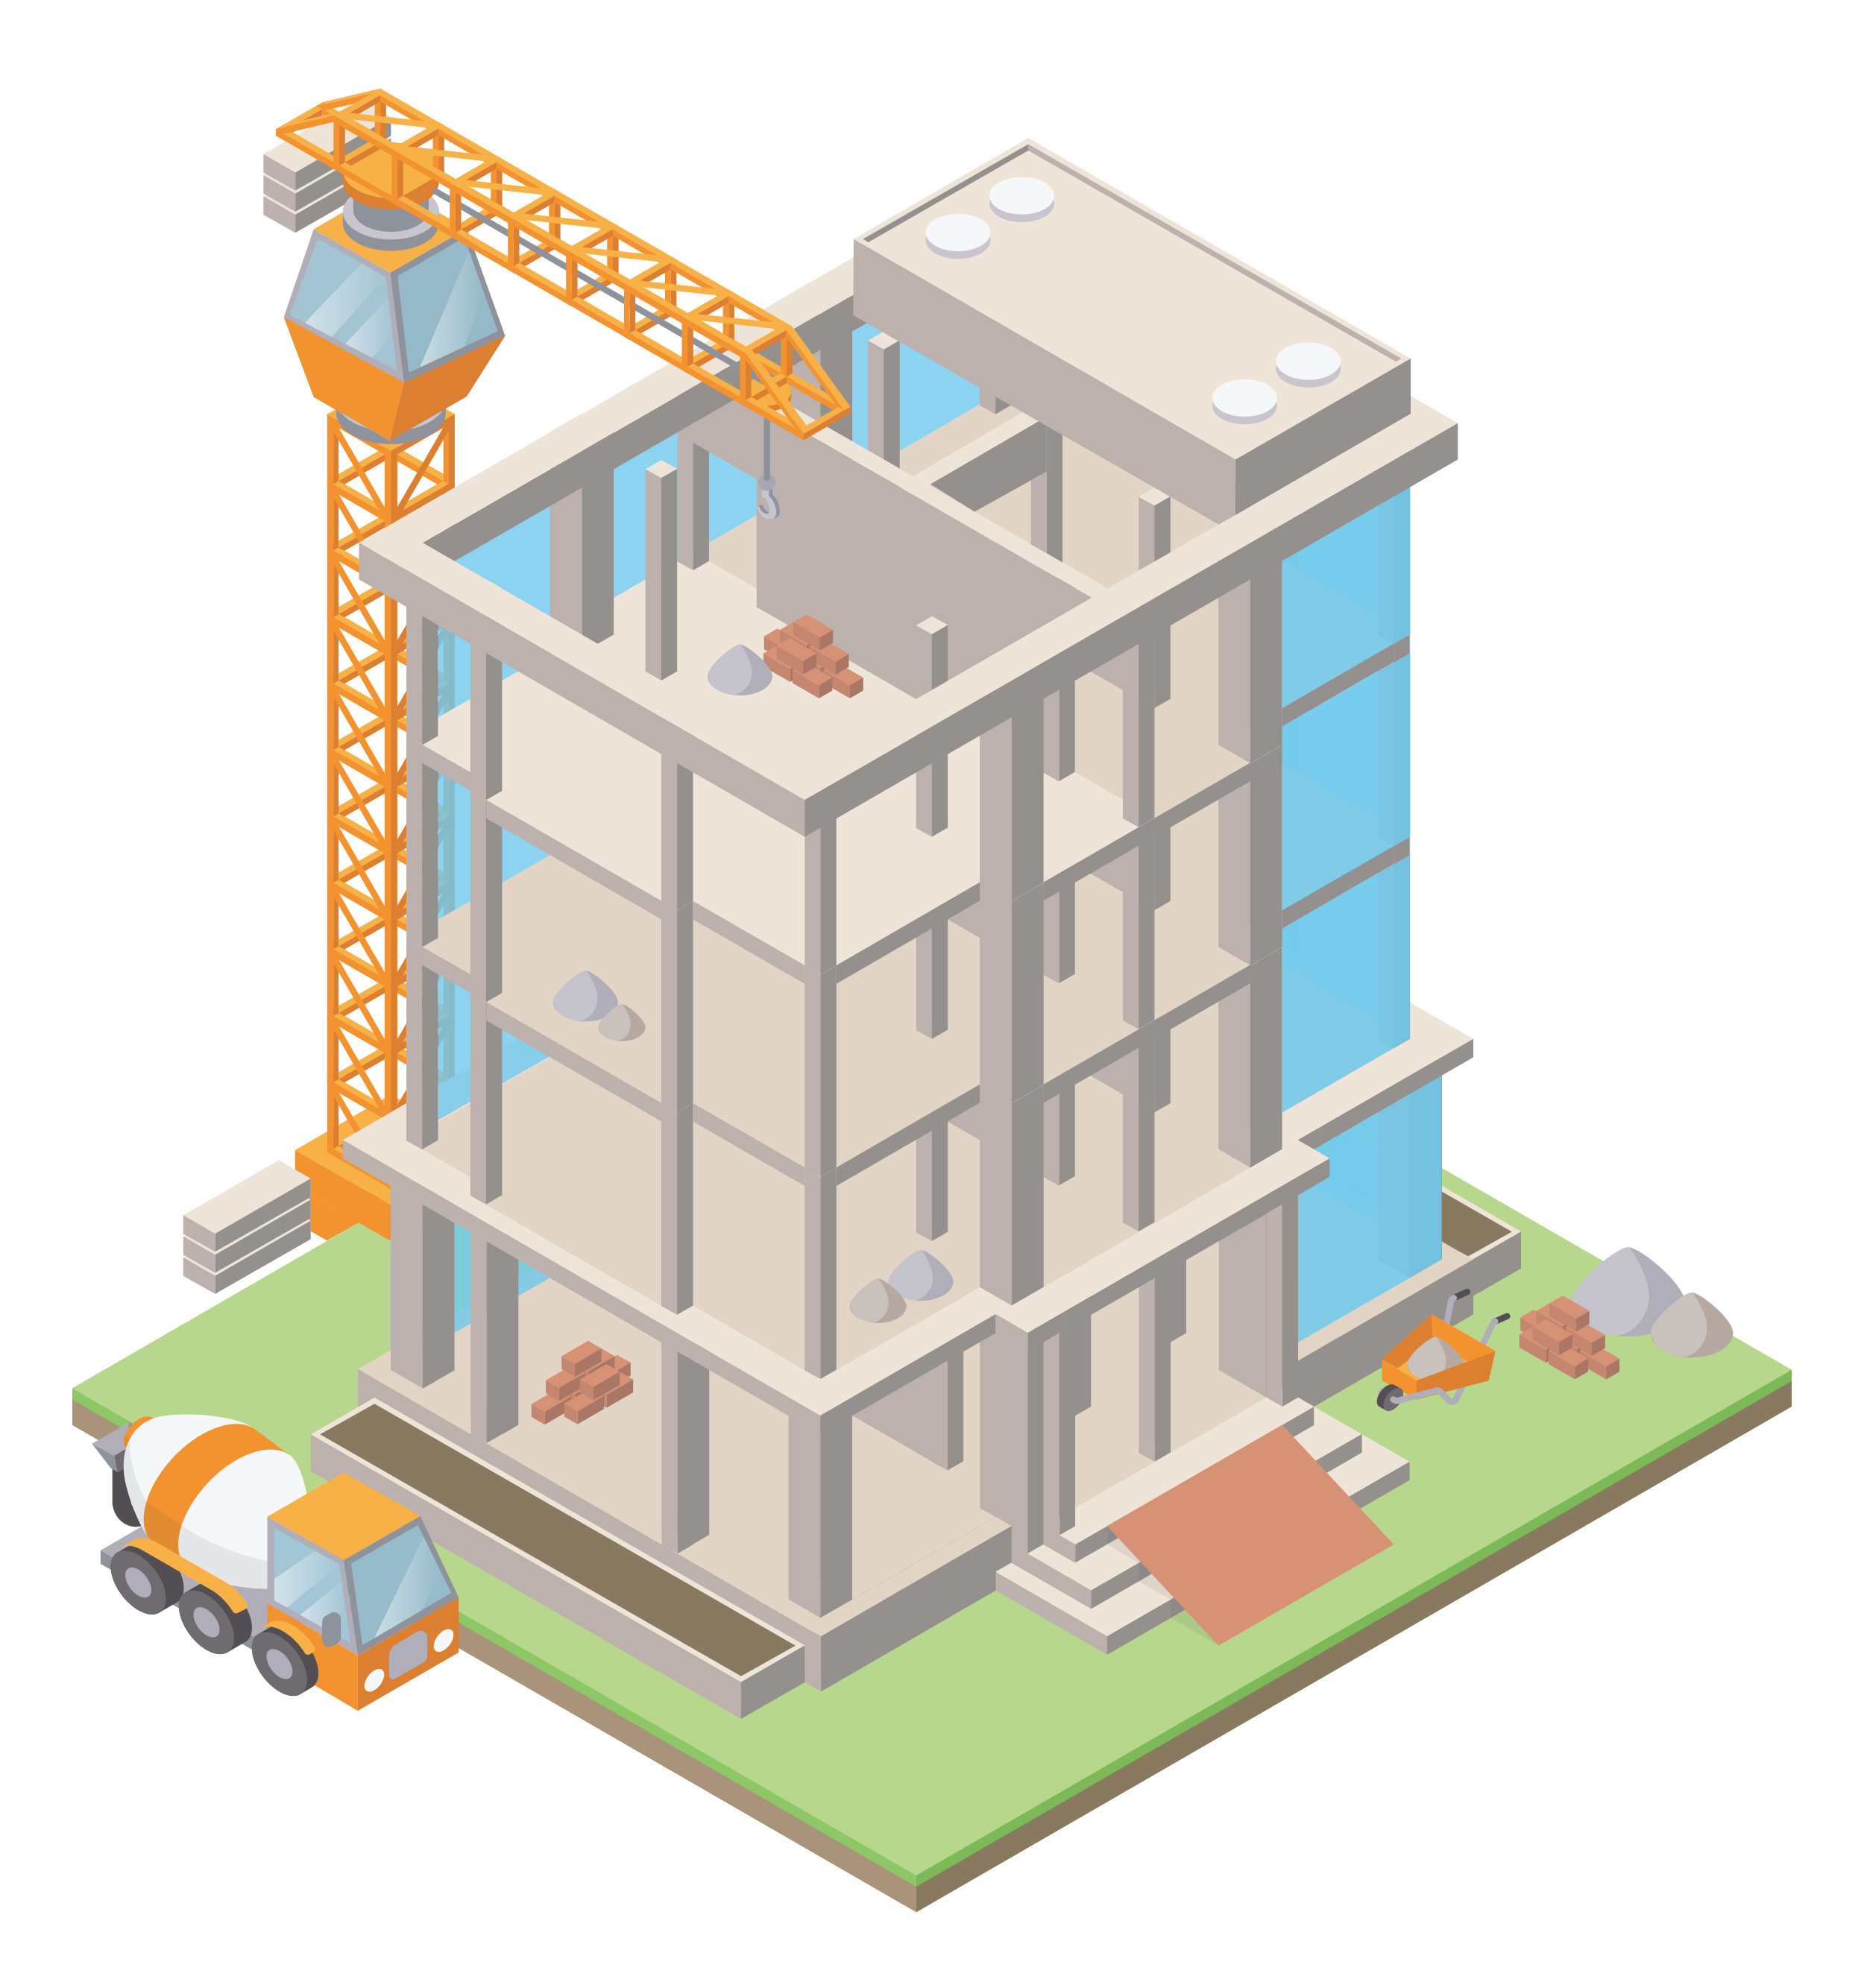 illustration_andre_levy_zhion_vector_isometric_perspective_infographic_construction_building_team_process_4.png